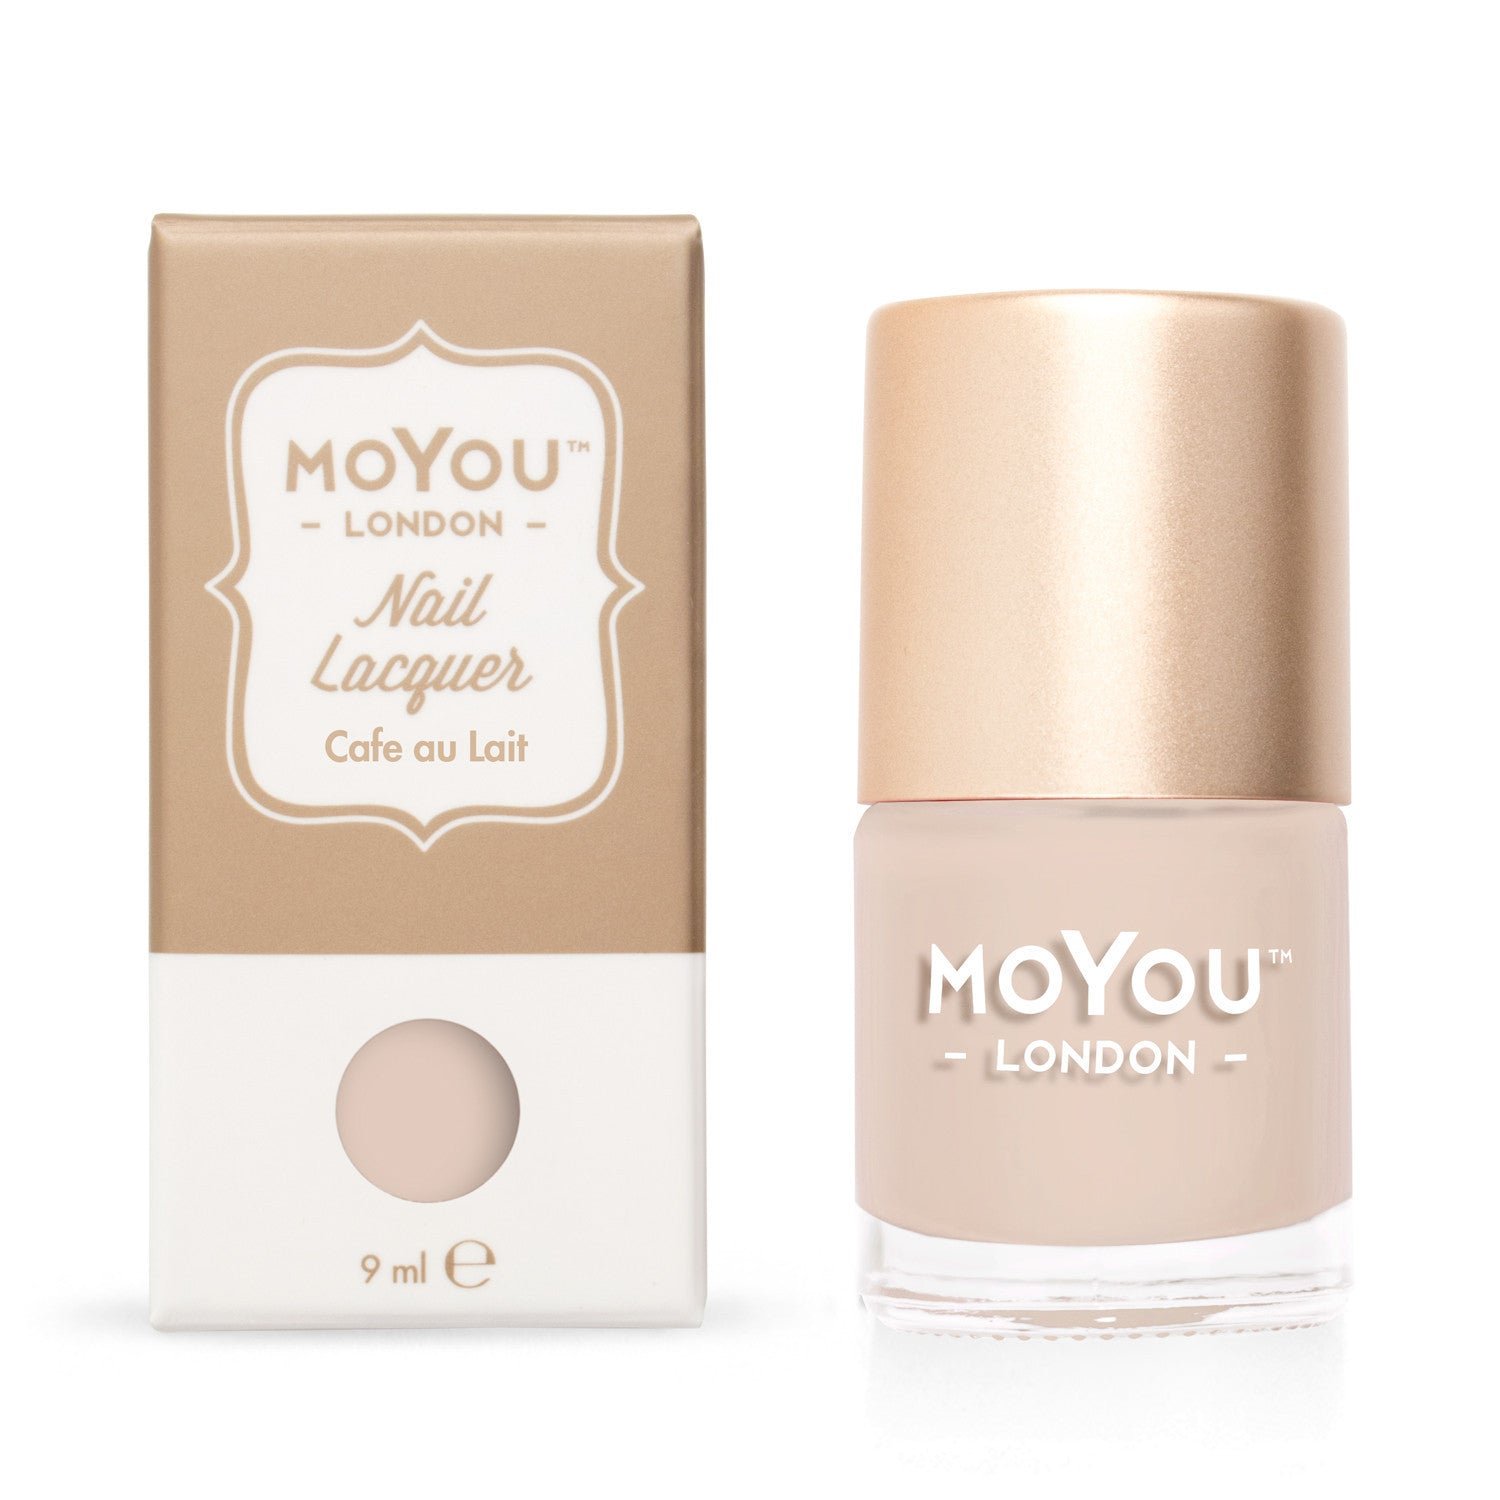 Daily Charme Moyou London / Stamping Nail Lacquer / Café Au Lait - Beige Nude Stamping Polish